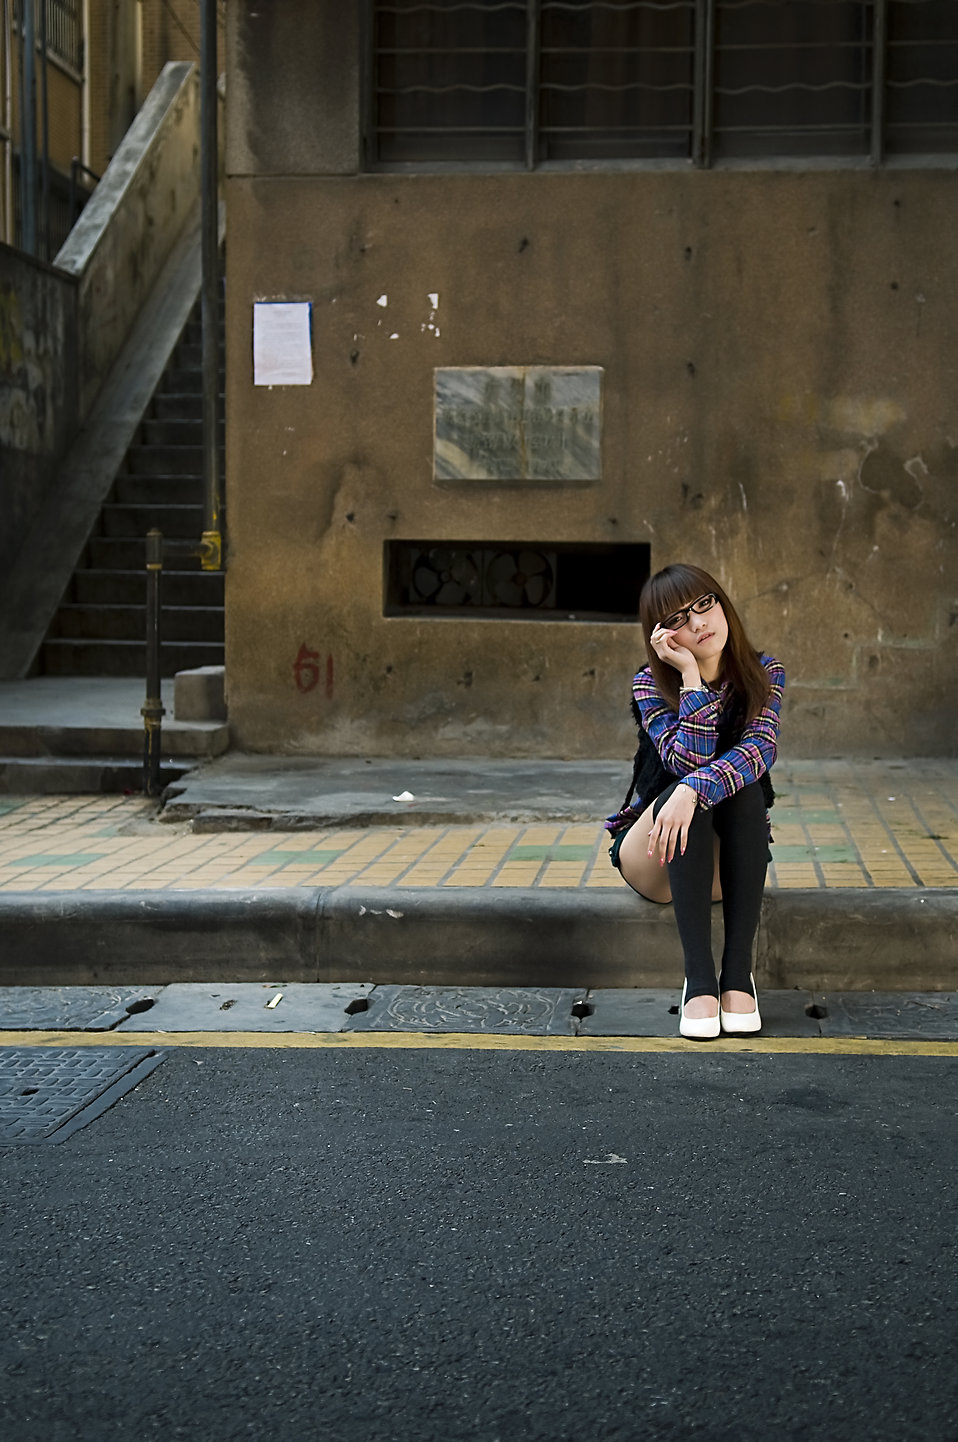 A beautiful Chinese girl sitting on a curb : Free Stock Photo